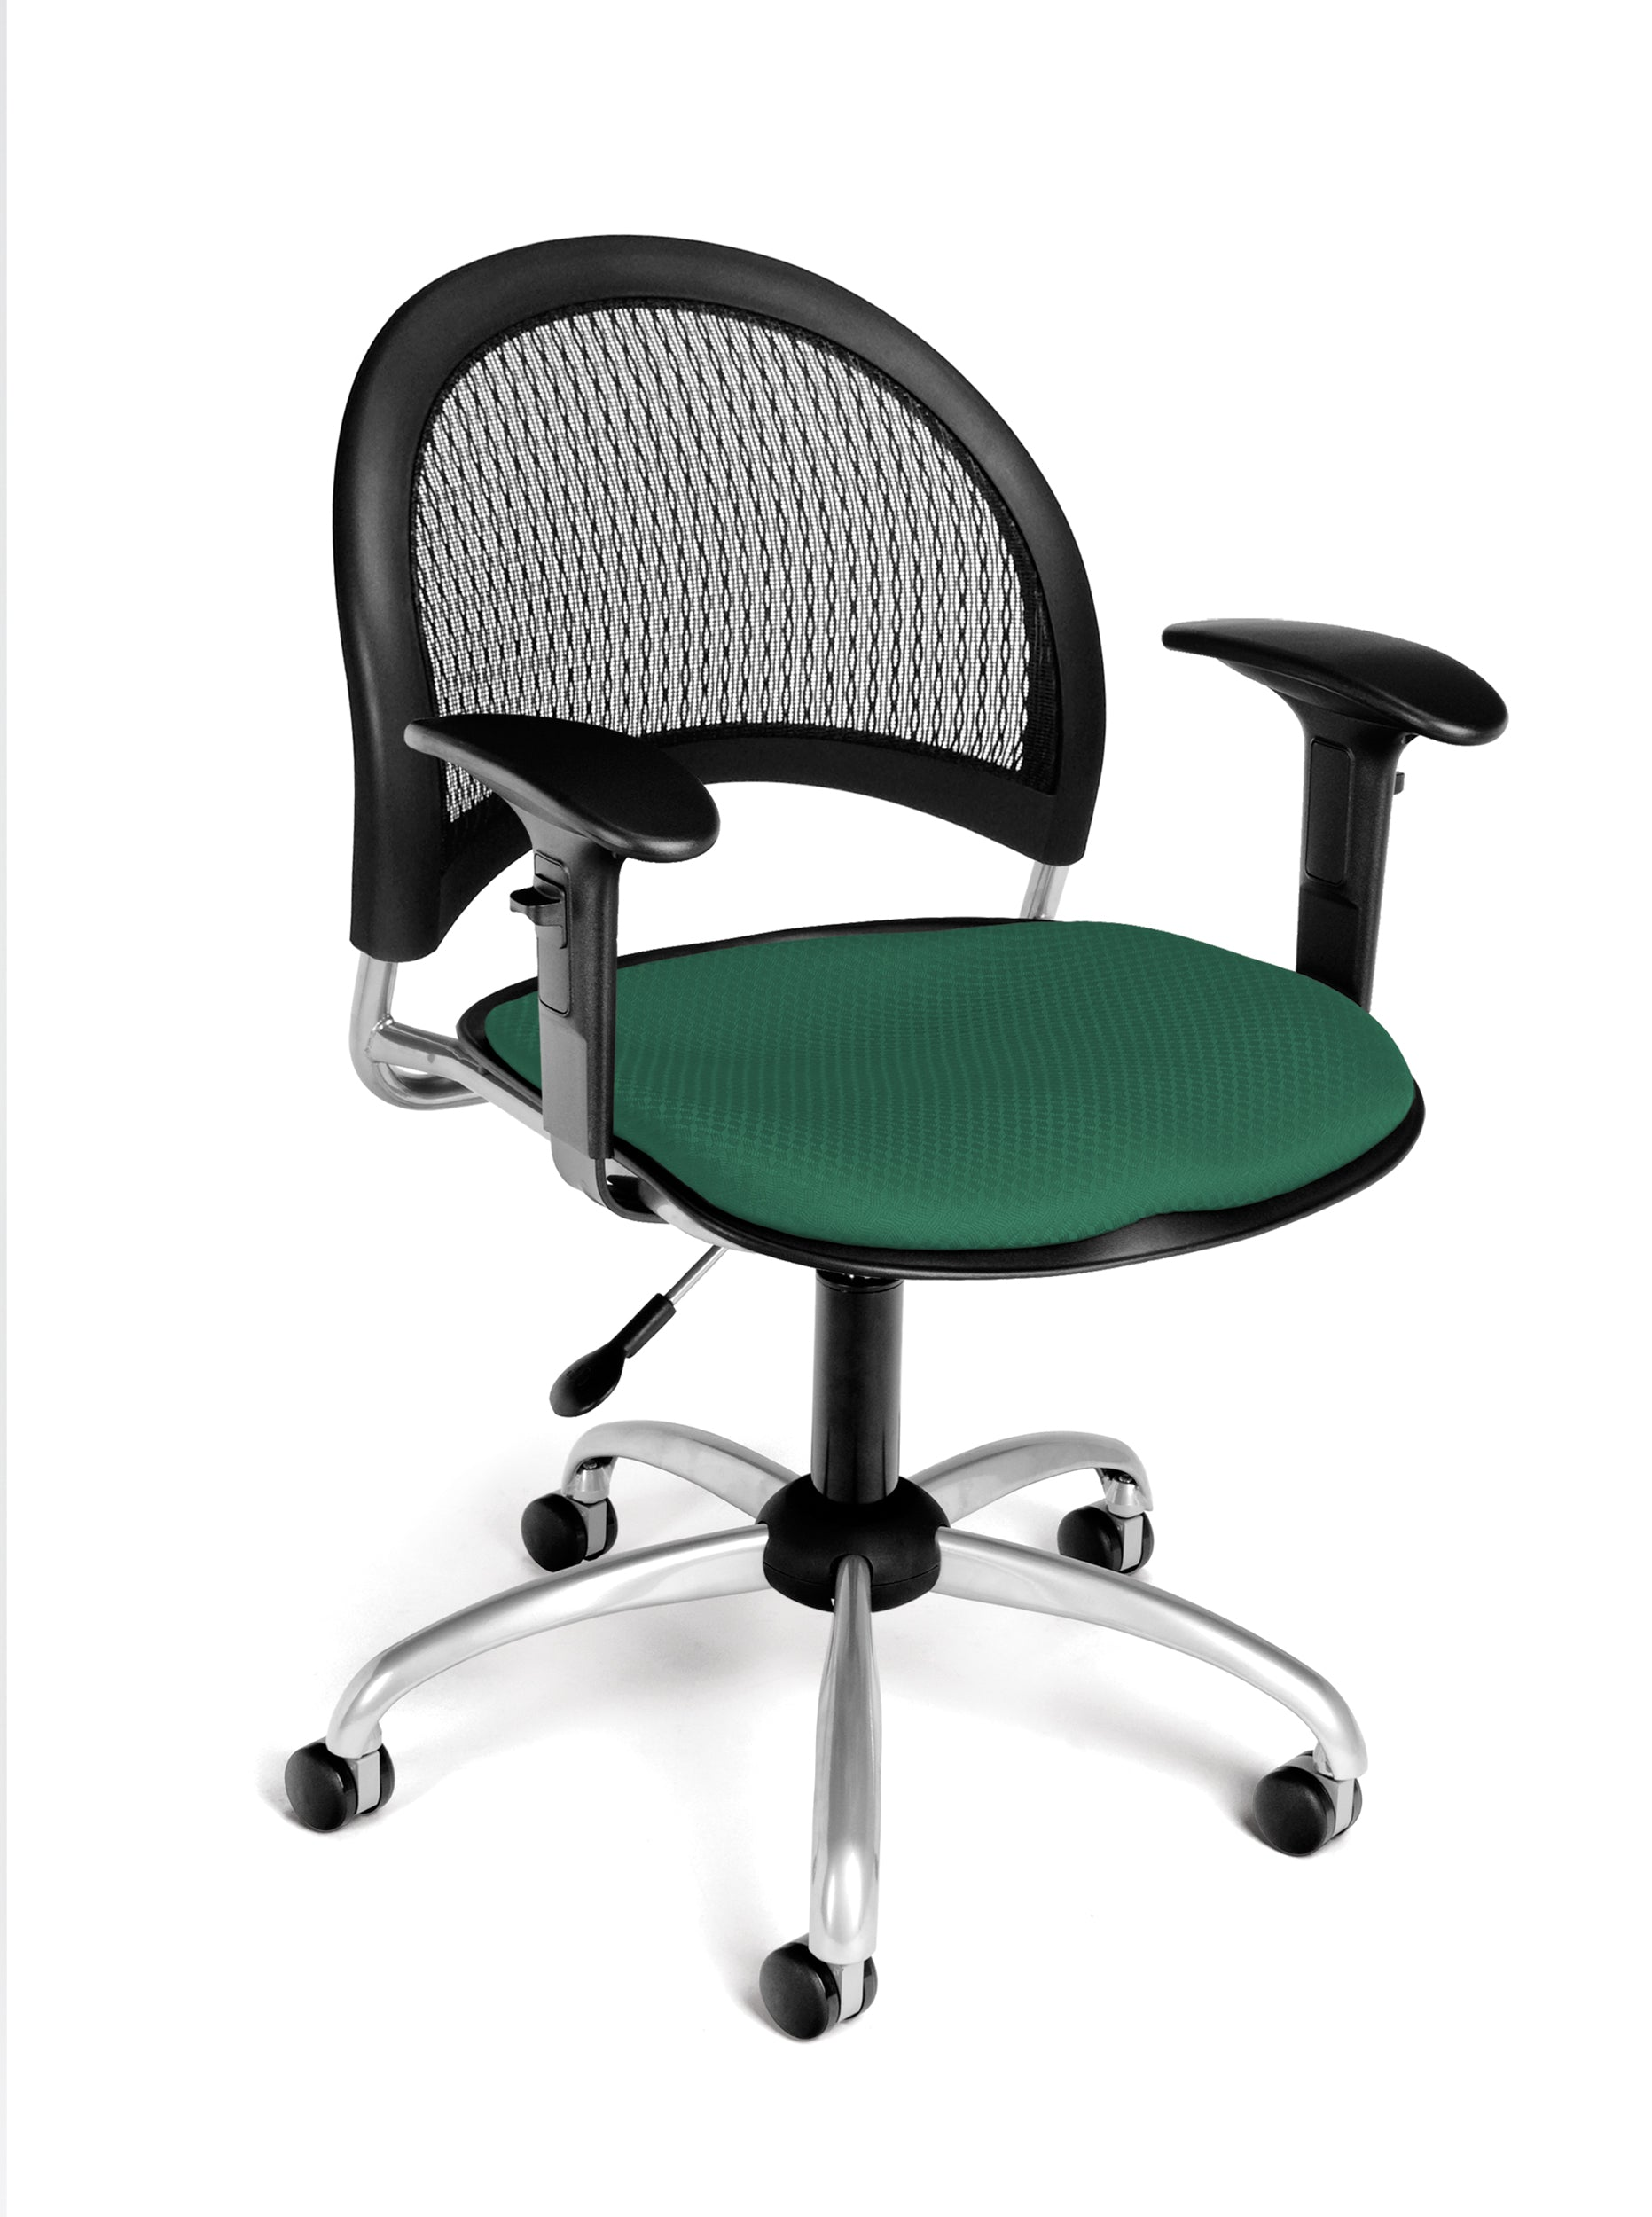 Ofminc Model 336-AA3 Moon Series Fabric Swivel Arms Chair